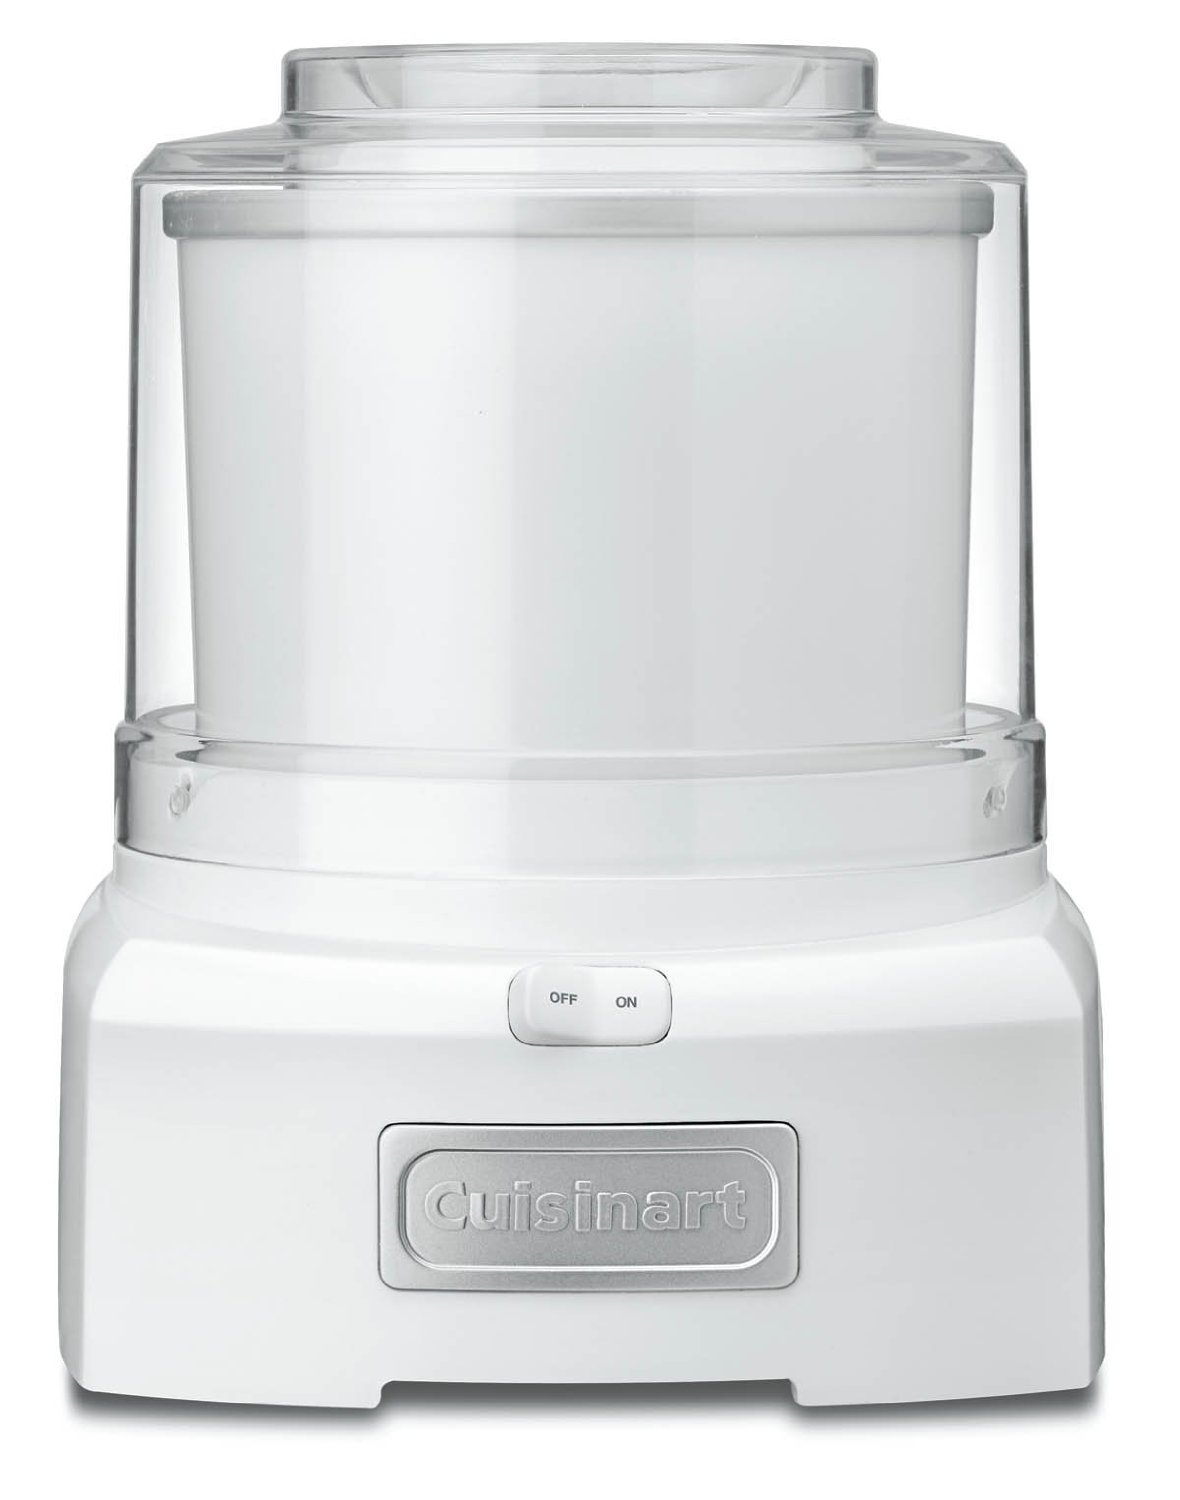 Ice Cream Maker Reviews Part - 16: Conair Cuisinart 1.5 Quart Frozen Yogurt-Ice Cream Maker